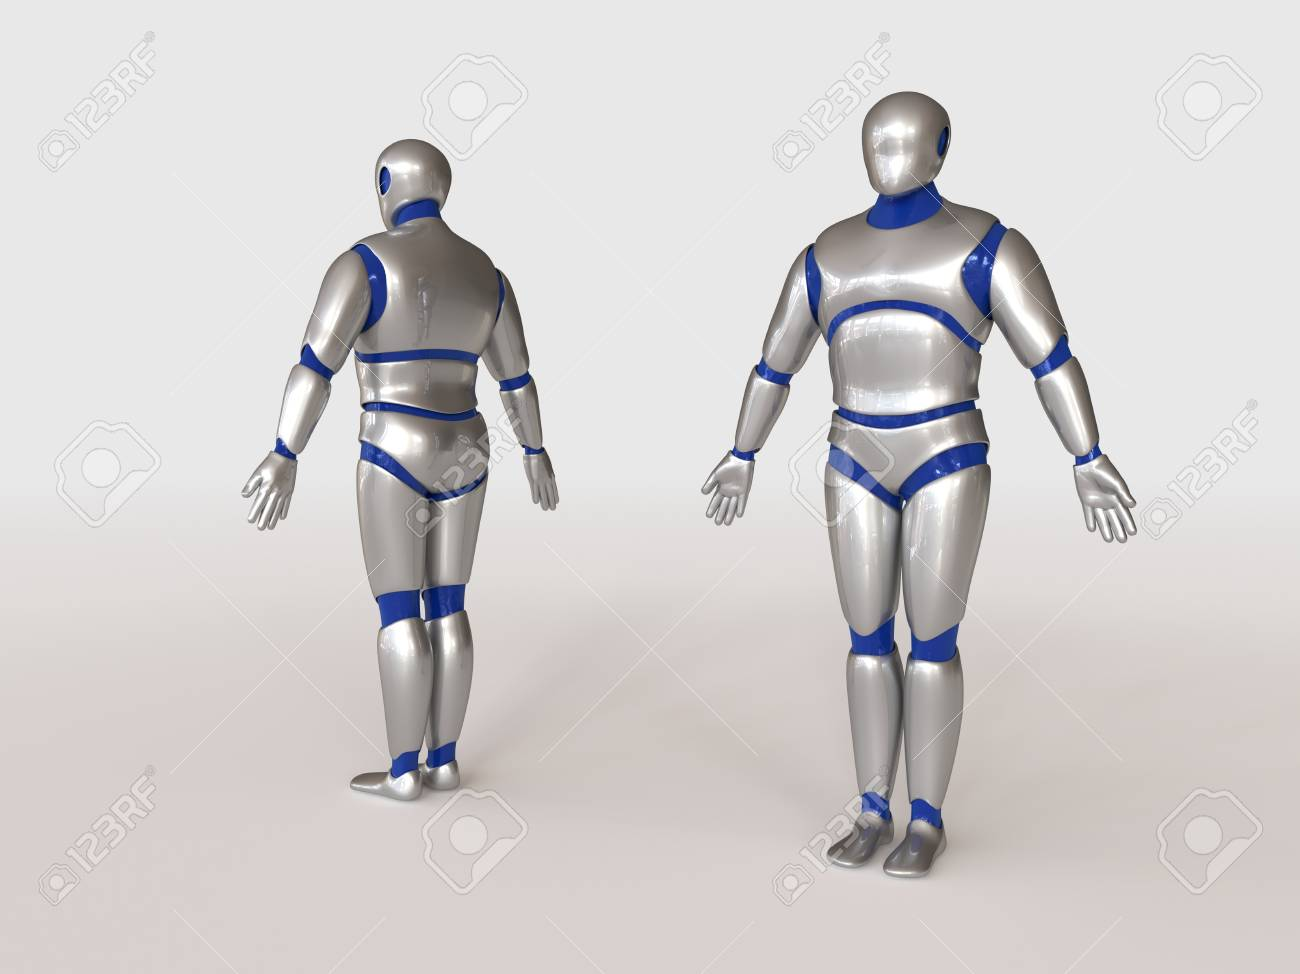 3D model of humanoid robot made of metalic plastic on a white